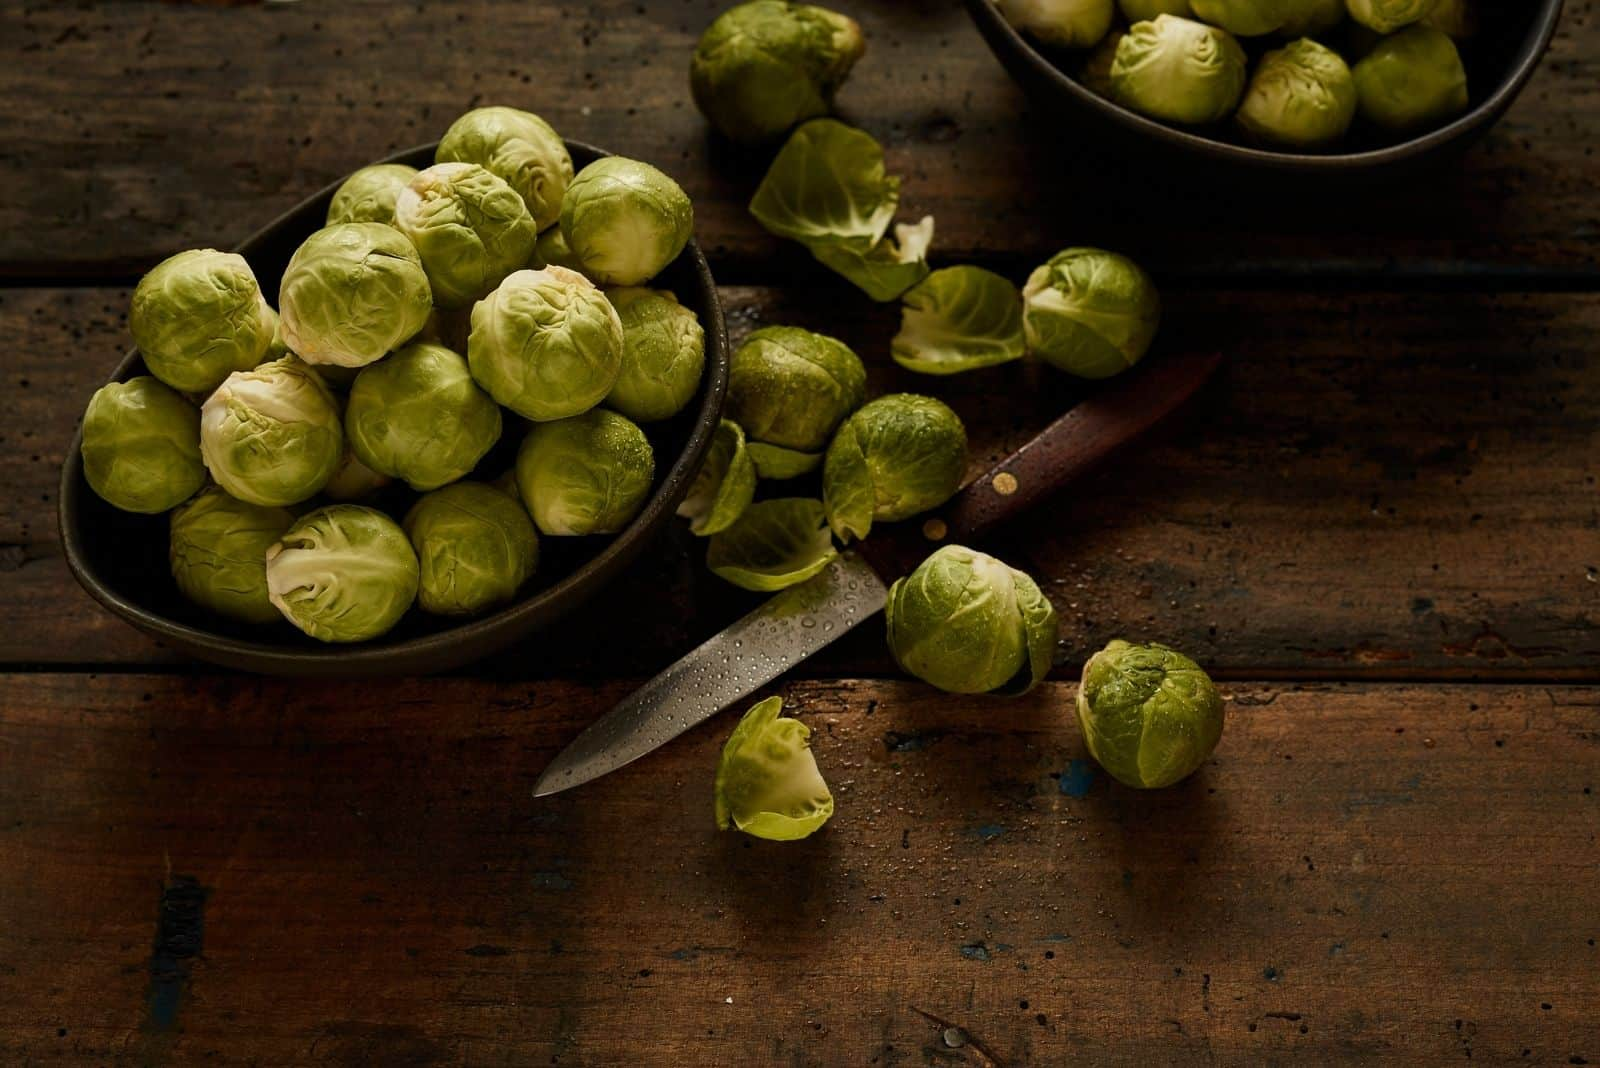 raw brussel sprouts with a knife on top of the table